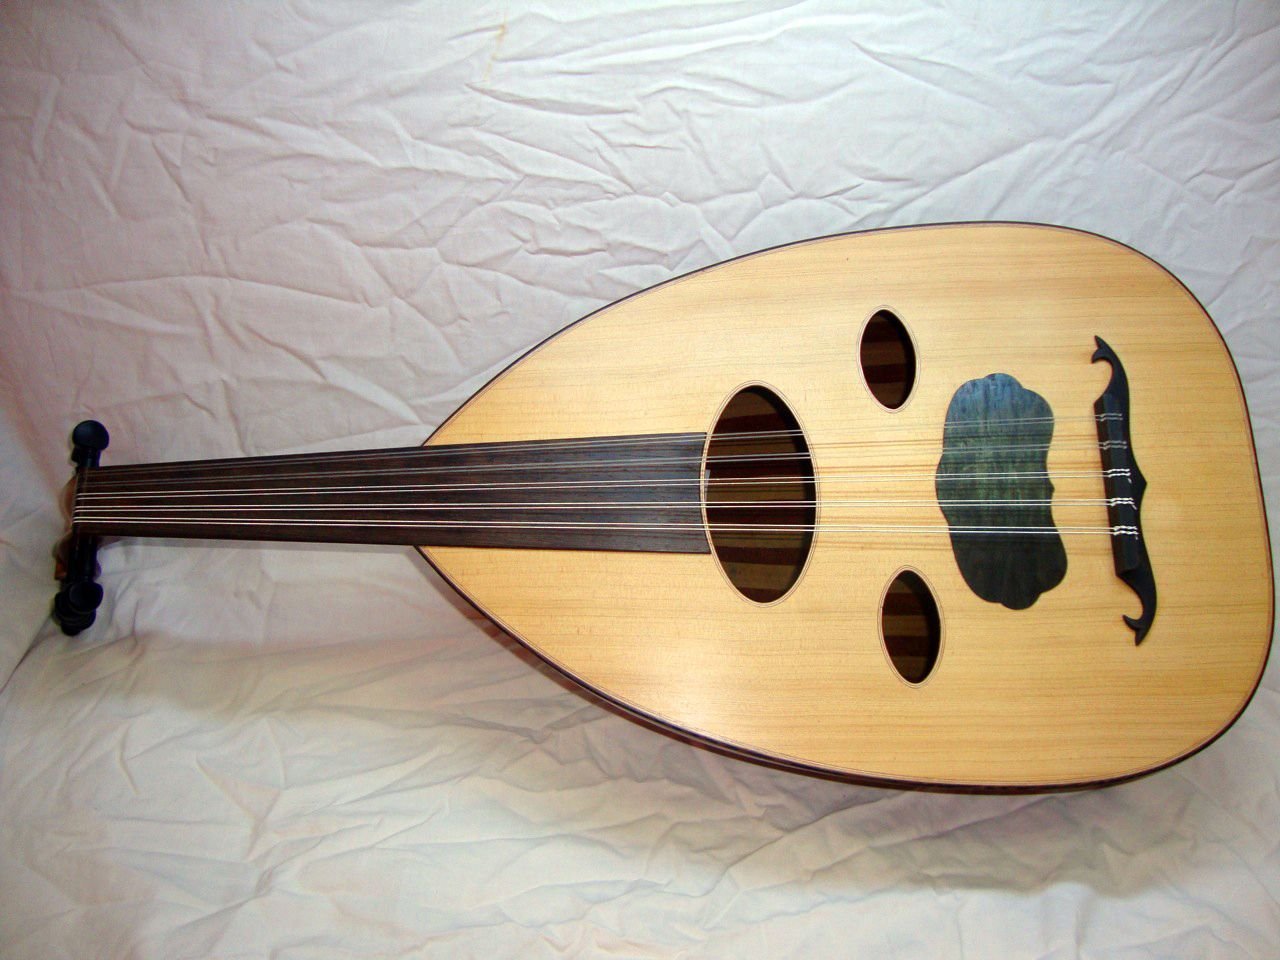 Moroccan Oud #2 | lute and oud | Pinterest | World, Festivals and ...